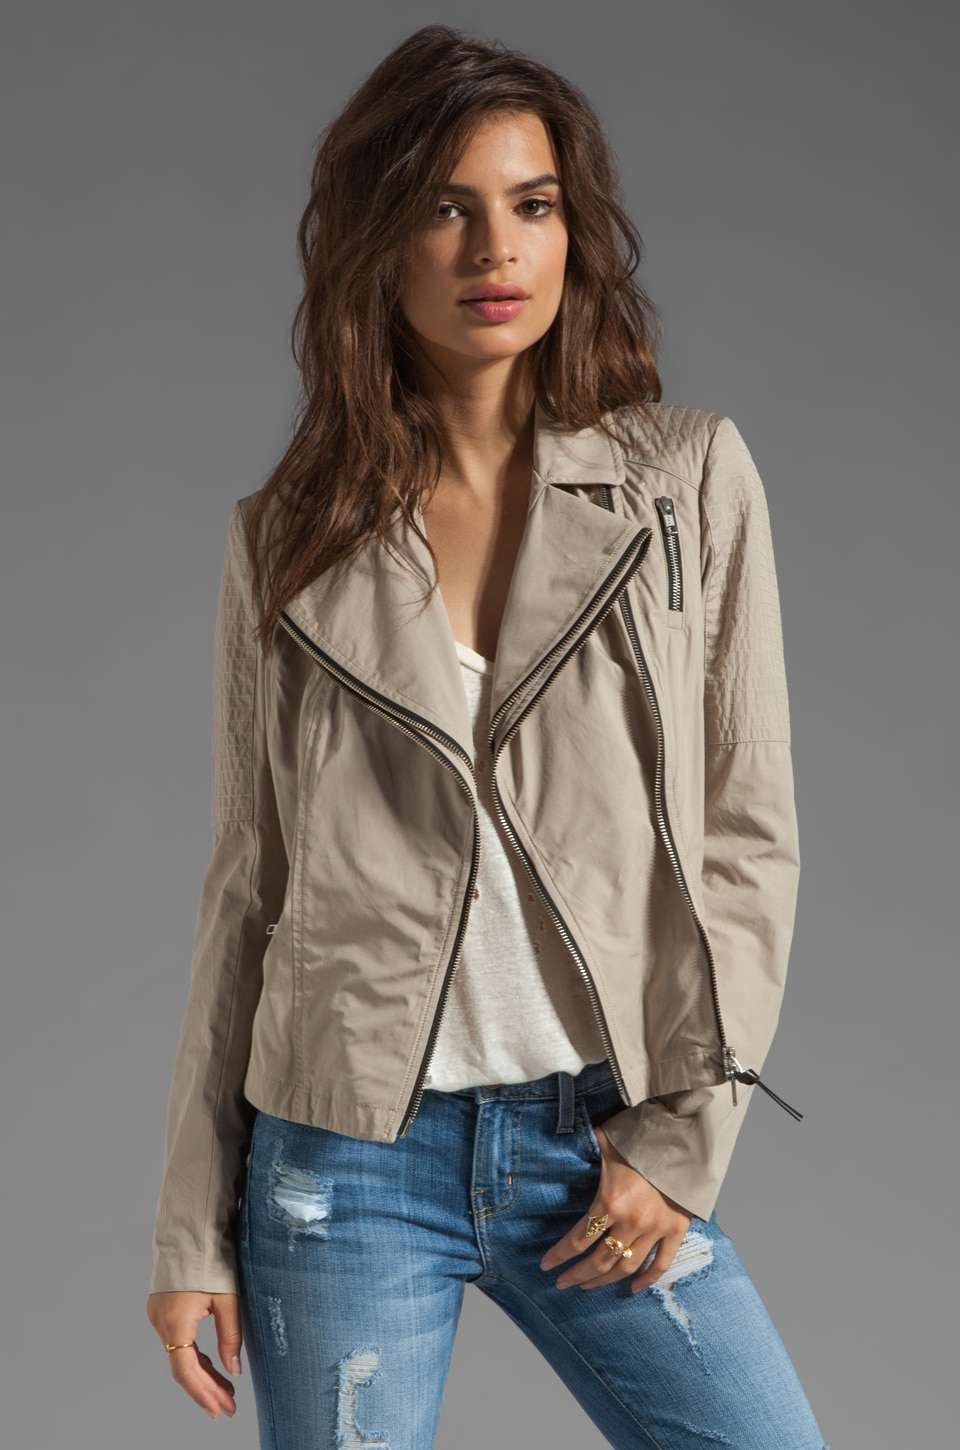 Mackage Nellie Pop Trench Jacket in Sand